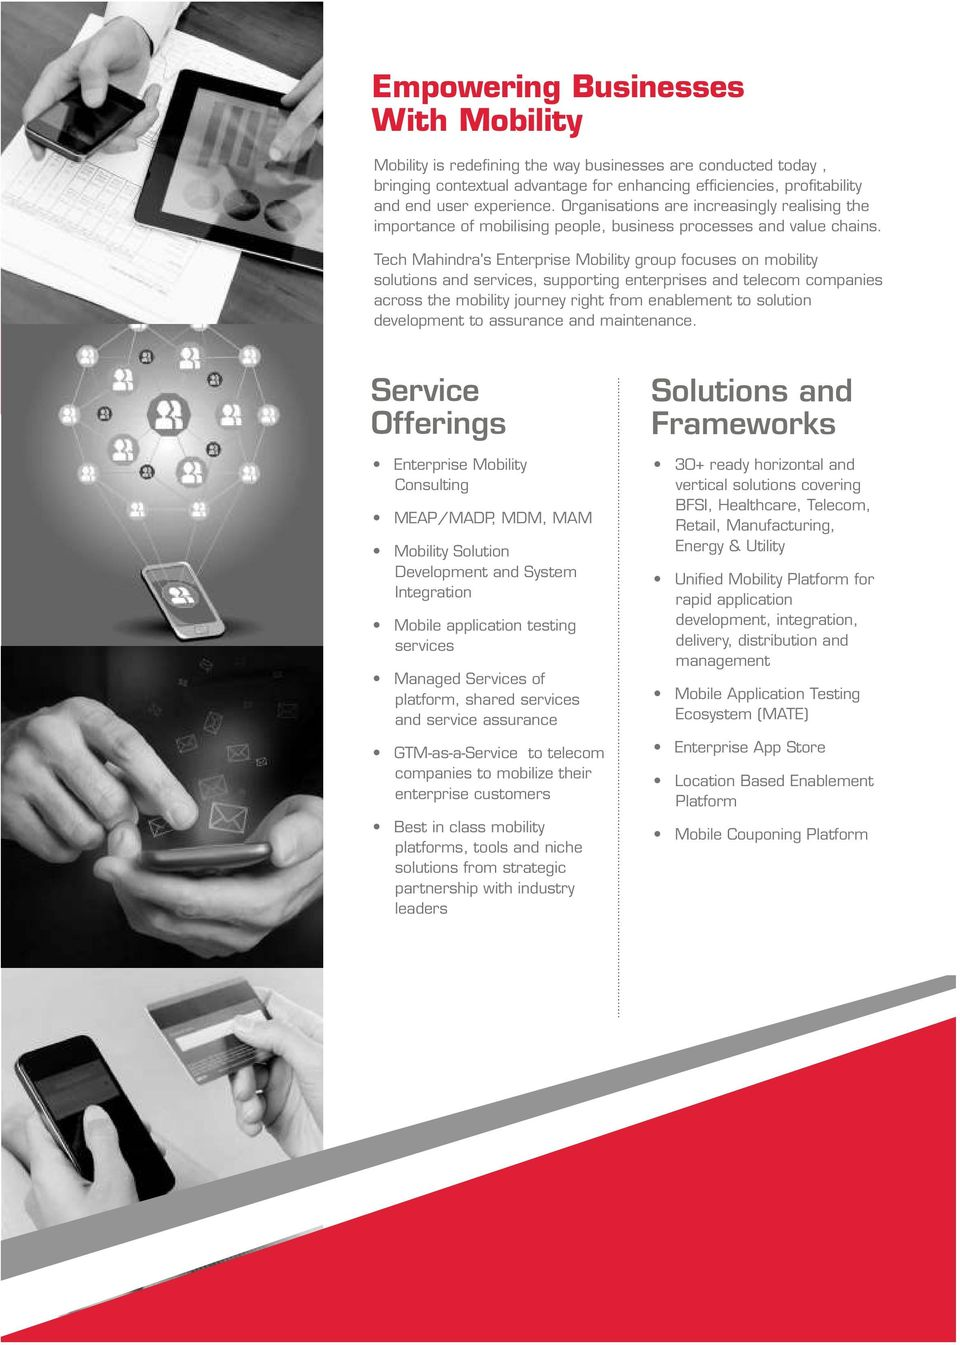 Tech Mahindra's Enterprise Mobility group focuses on mobility solutions and services, supporting enterprises and telecom companies across the mobility journey right from enablement to solution